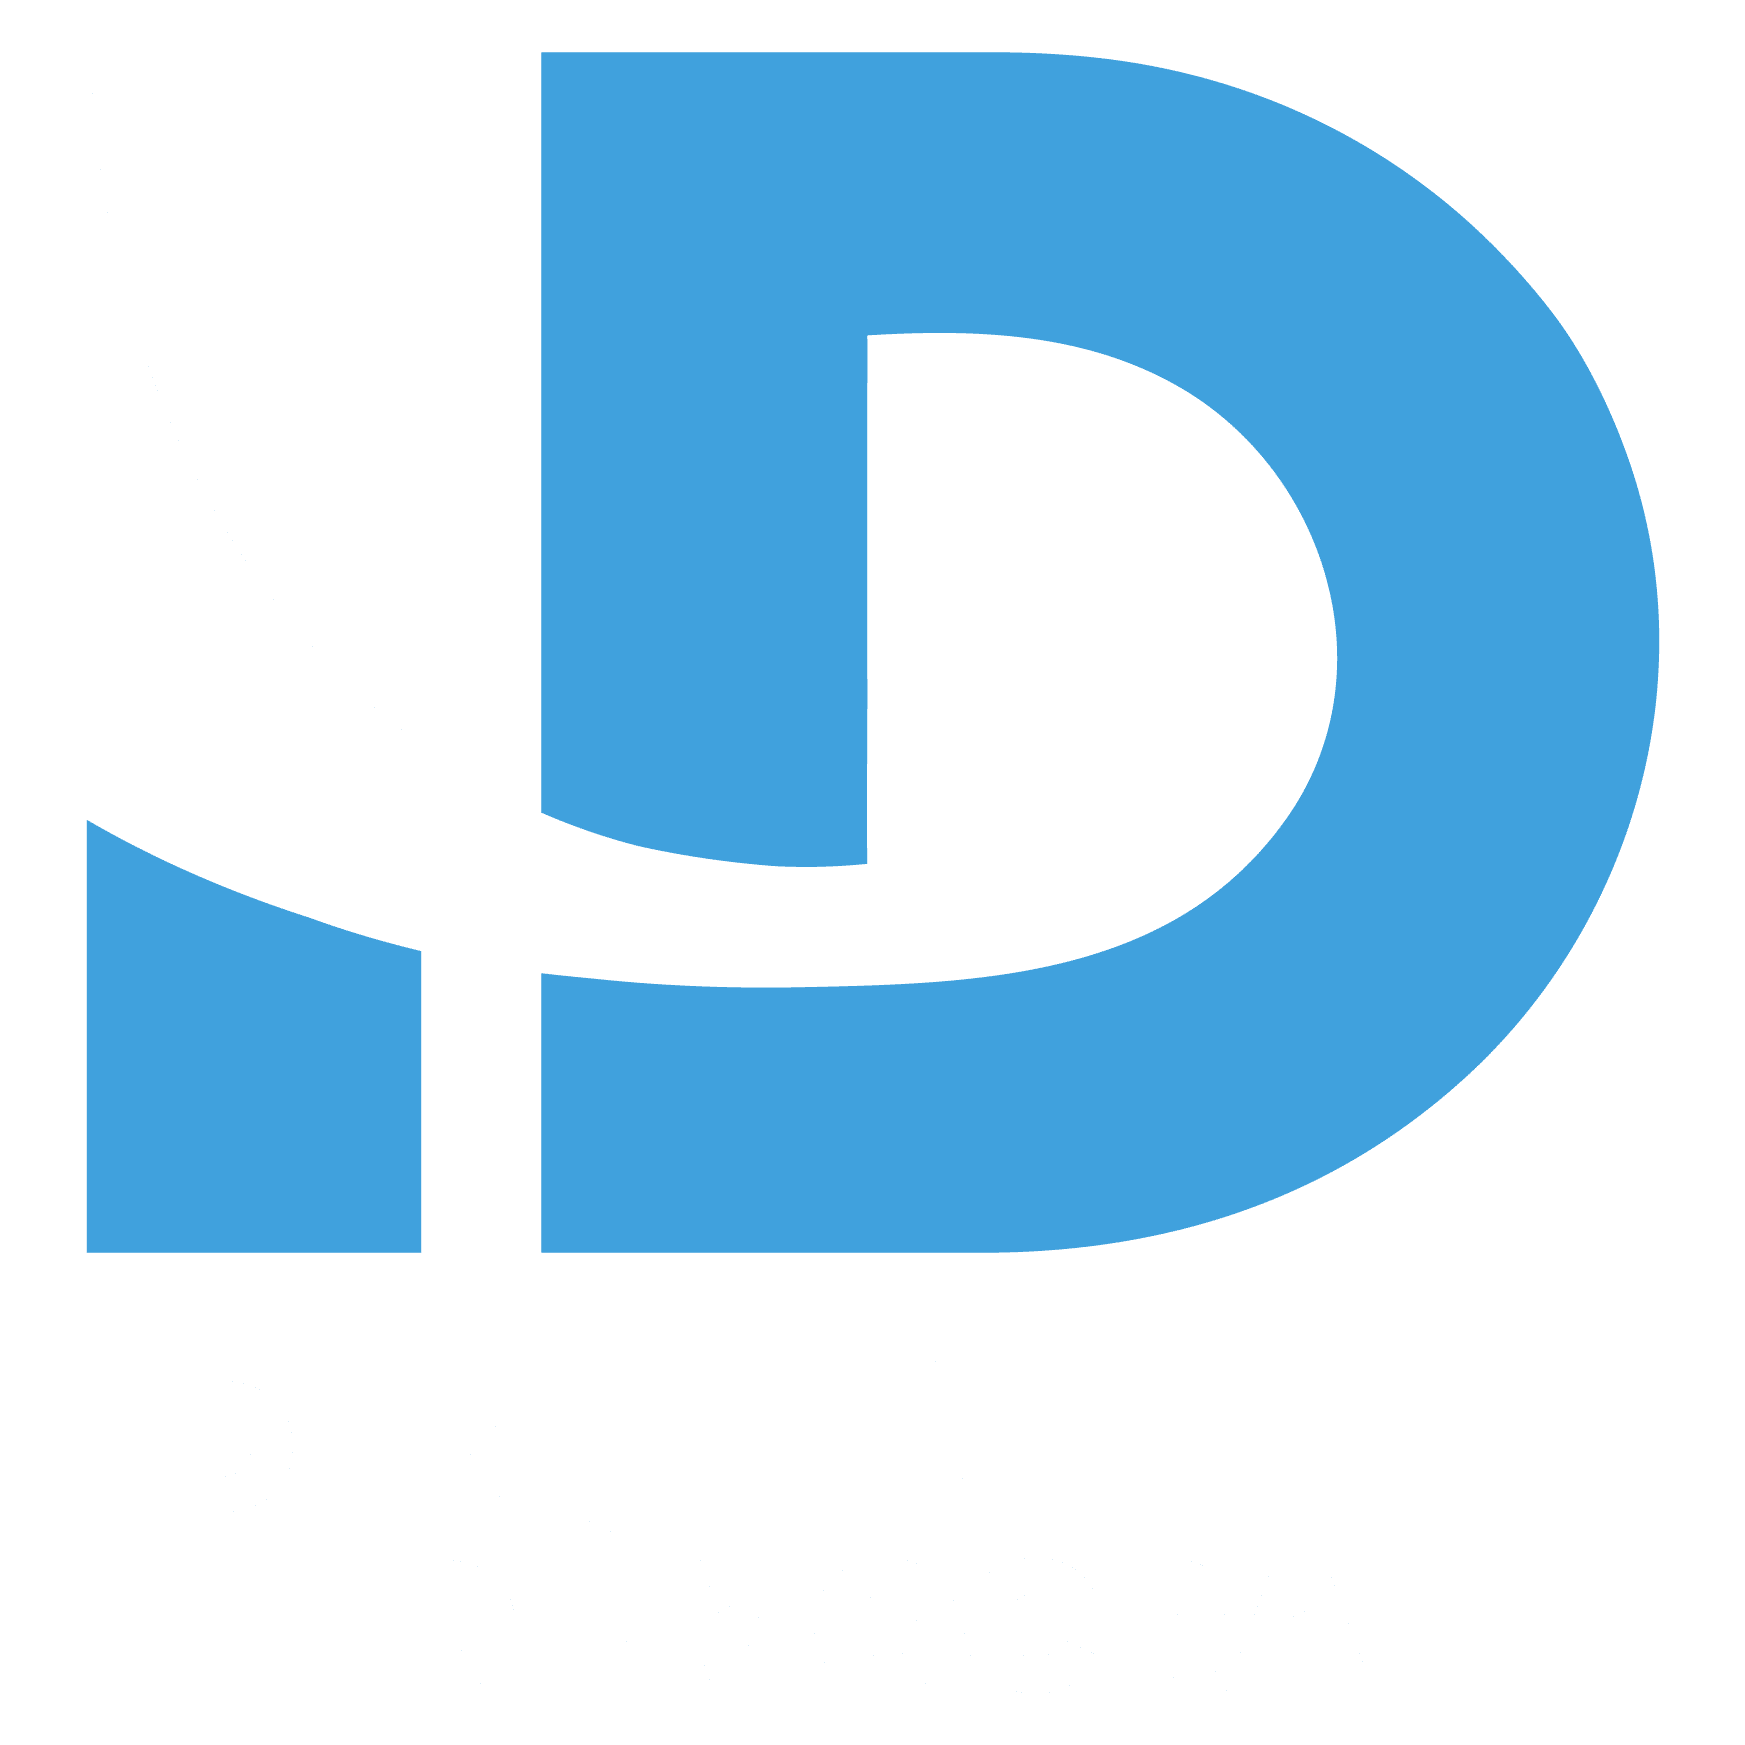 Groupe Identité et démocratie au Parlement européen